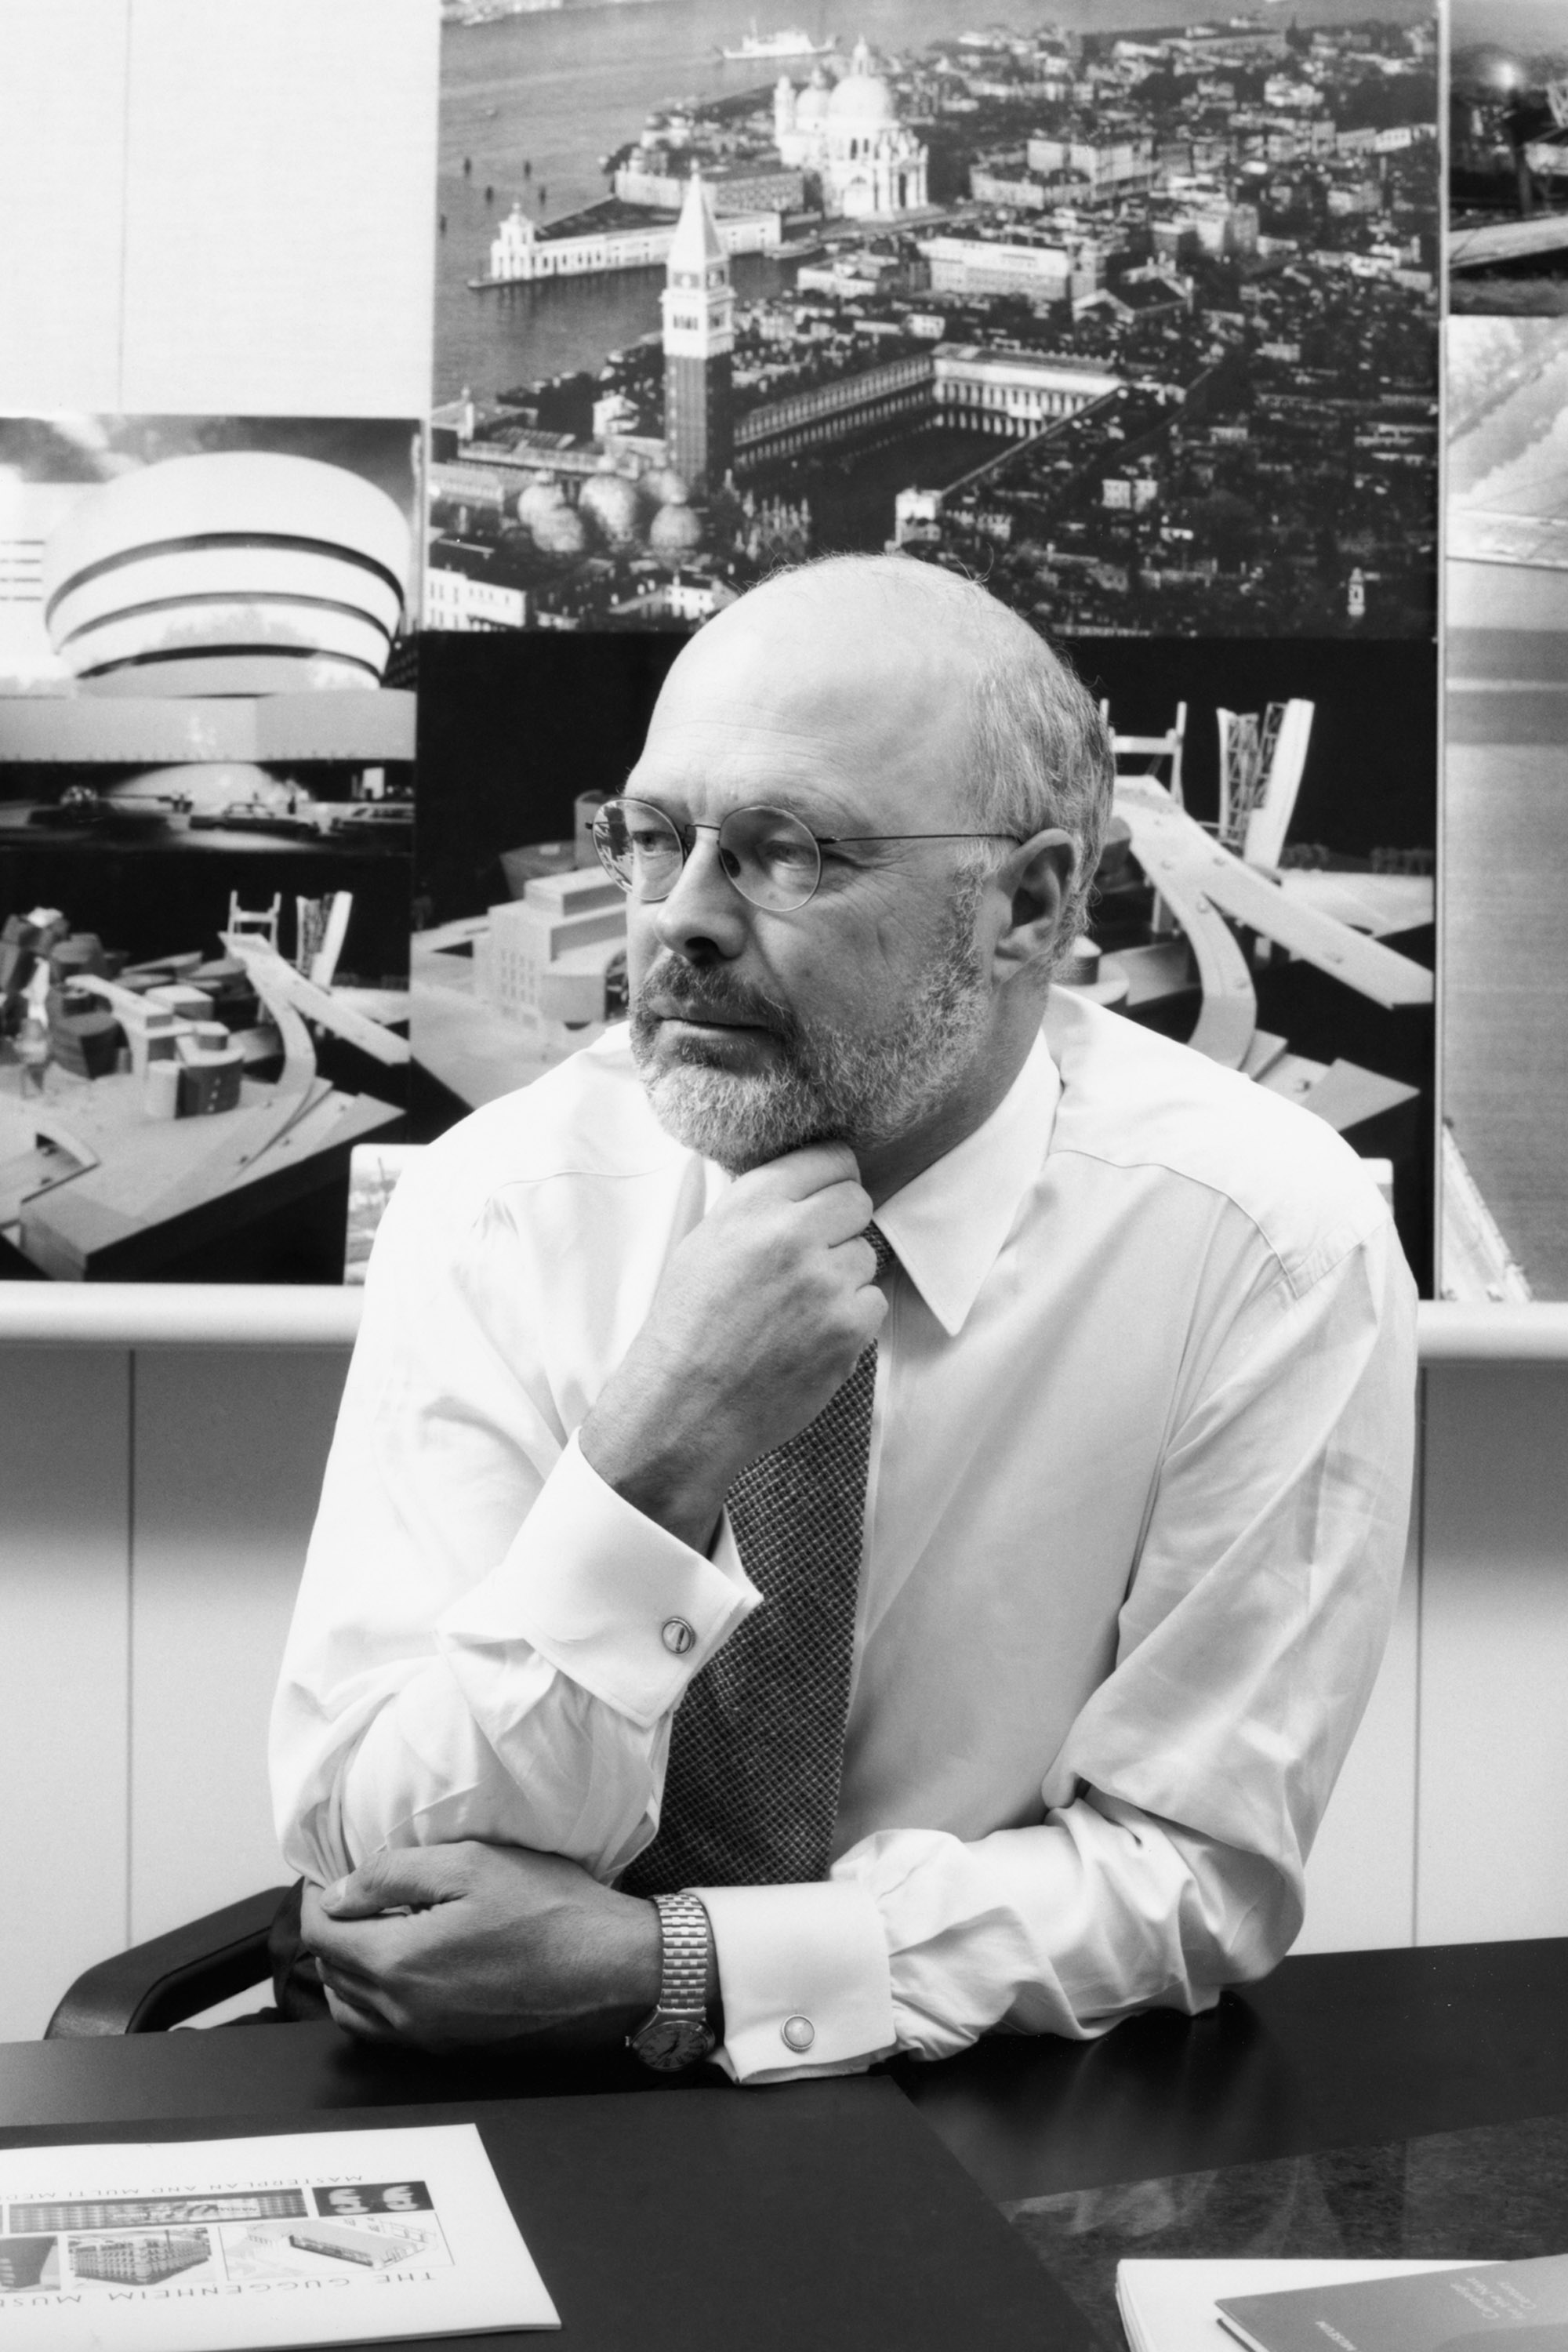 Thomas Krens, outgoing director of the Solomon R. Guggenheim Foundation, poses in this undated photo released to the media on Thursday.